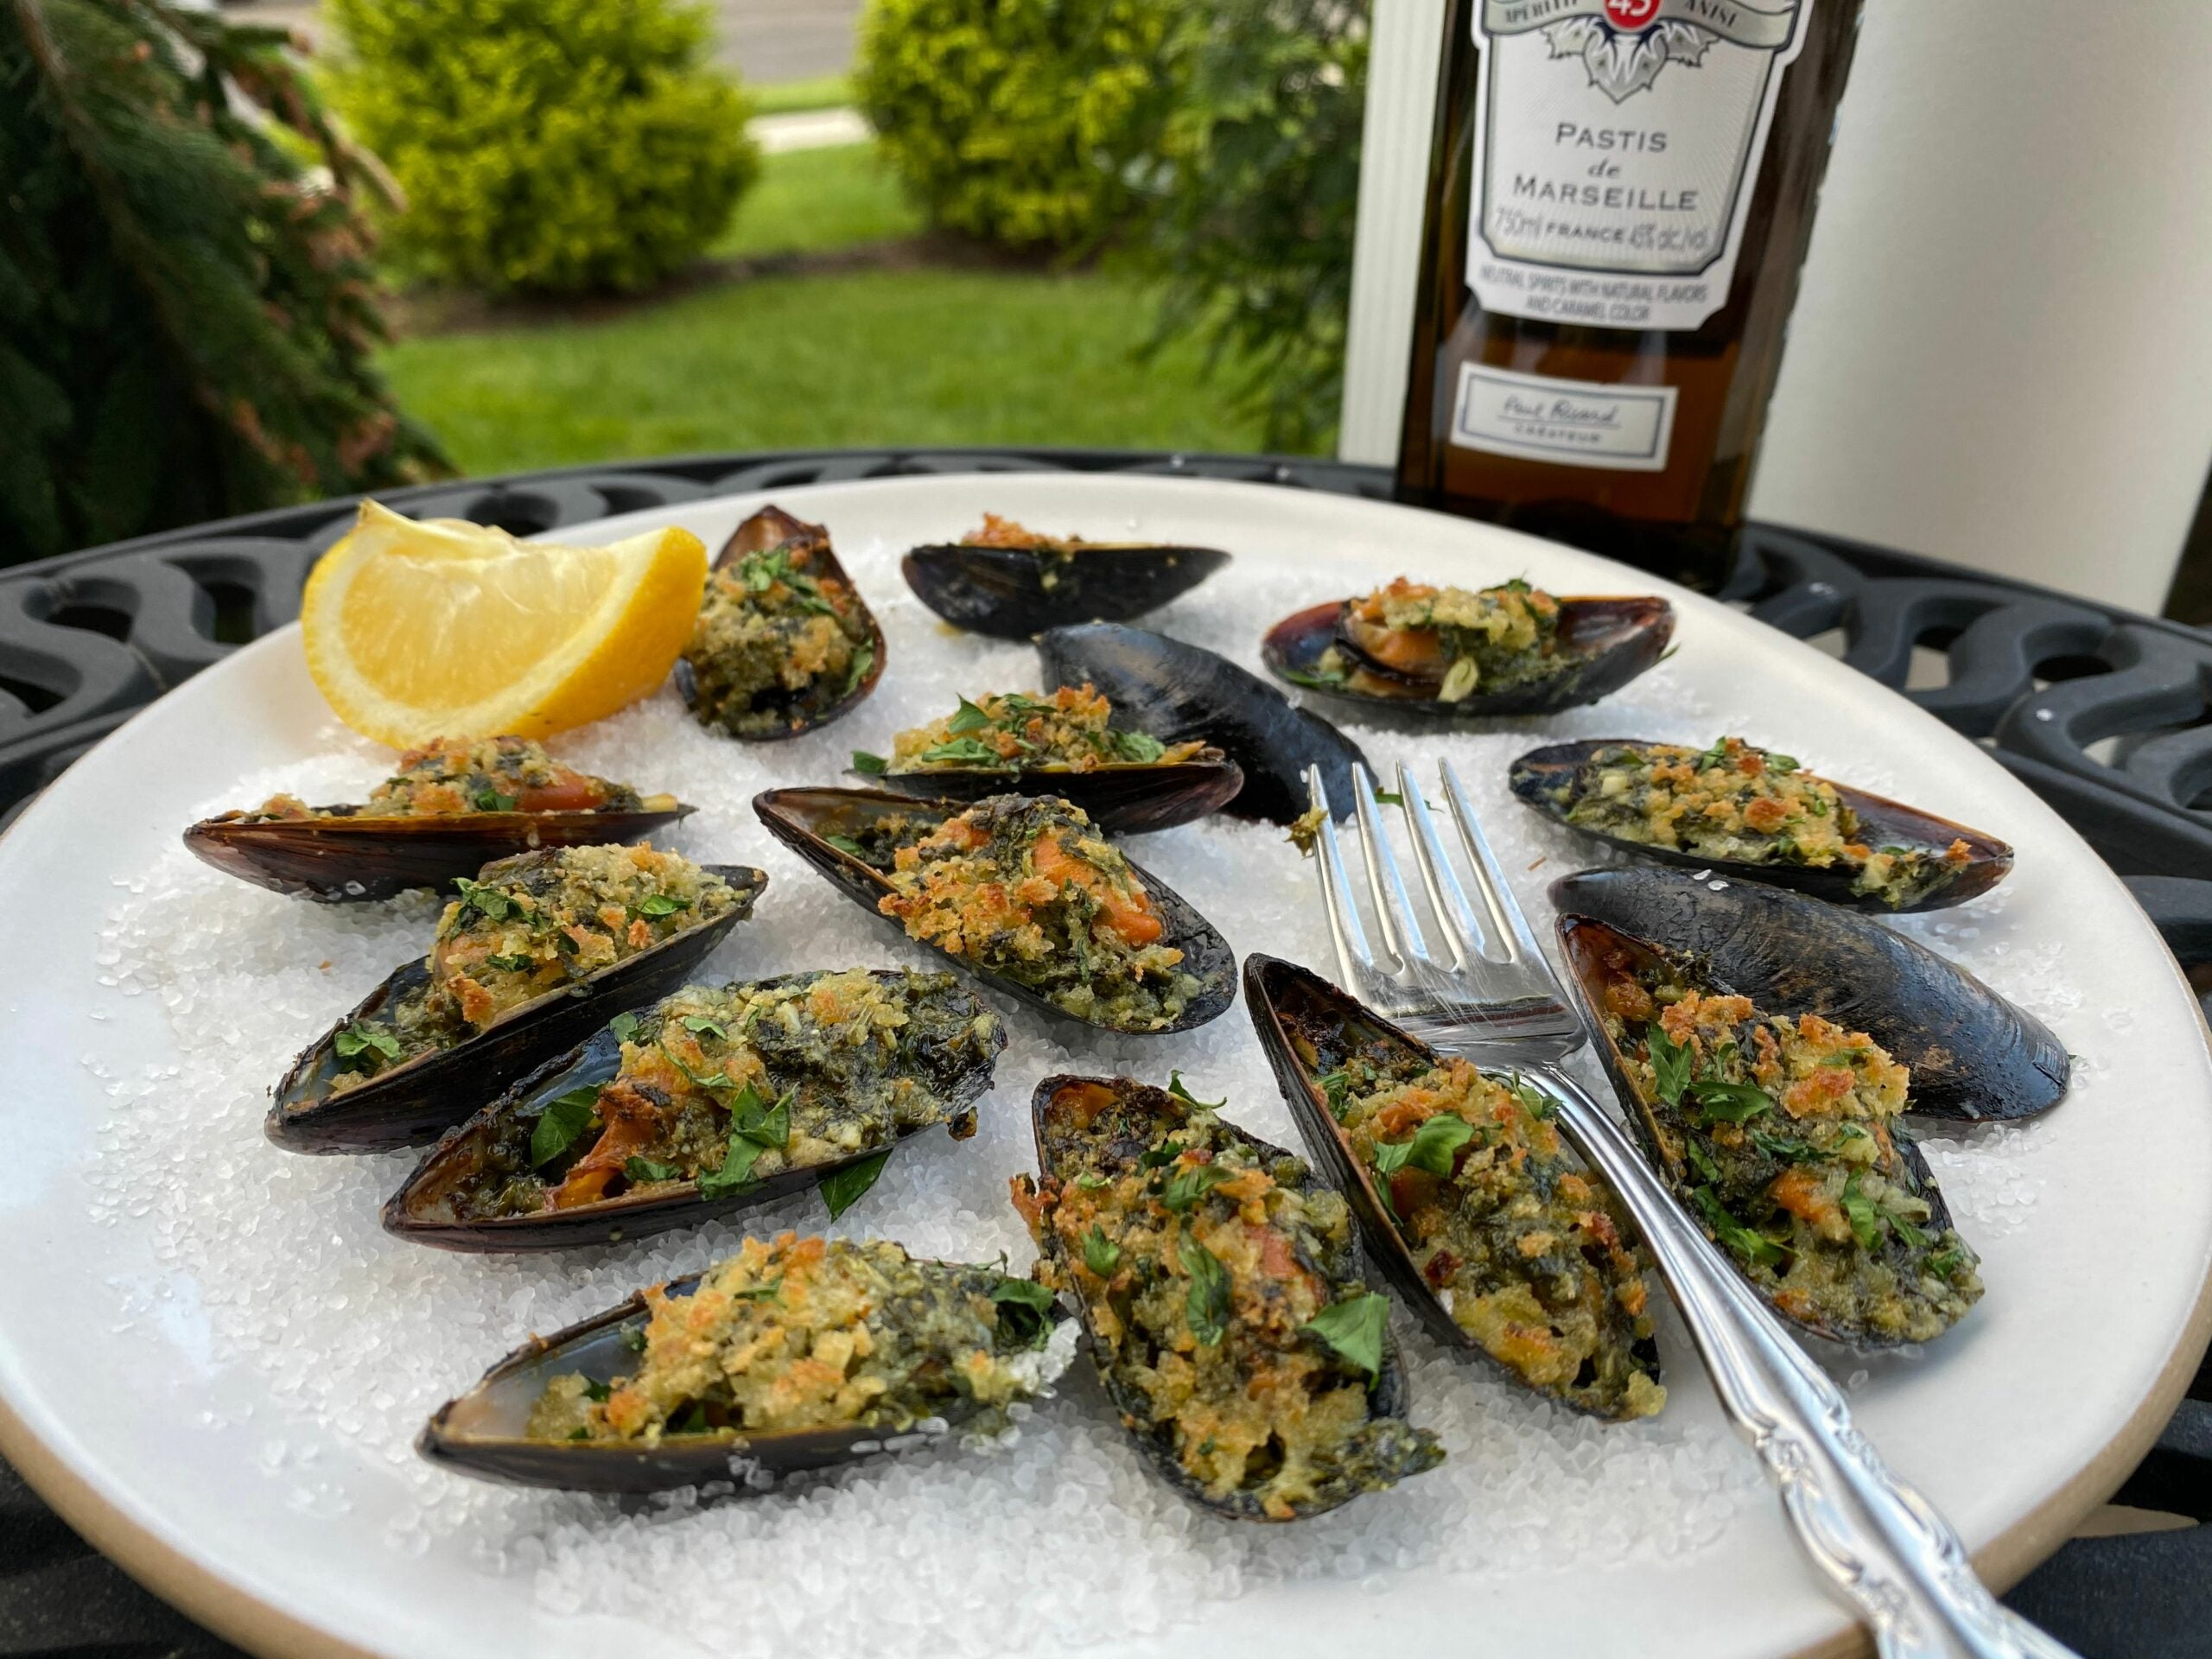 Mussels Rockefeller with Pastis Butter